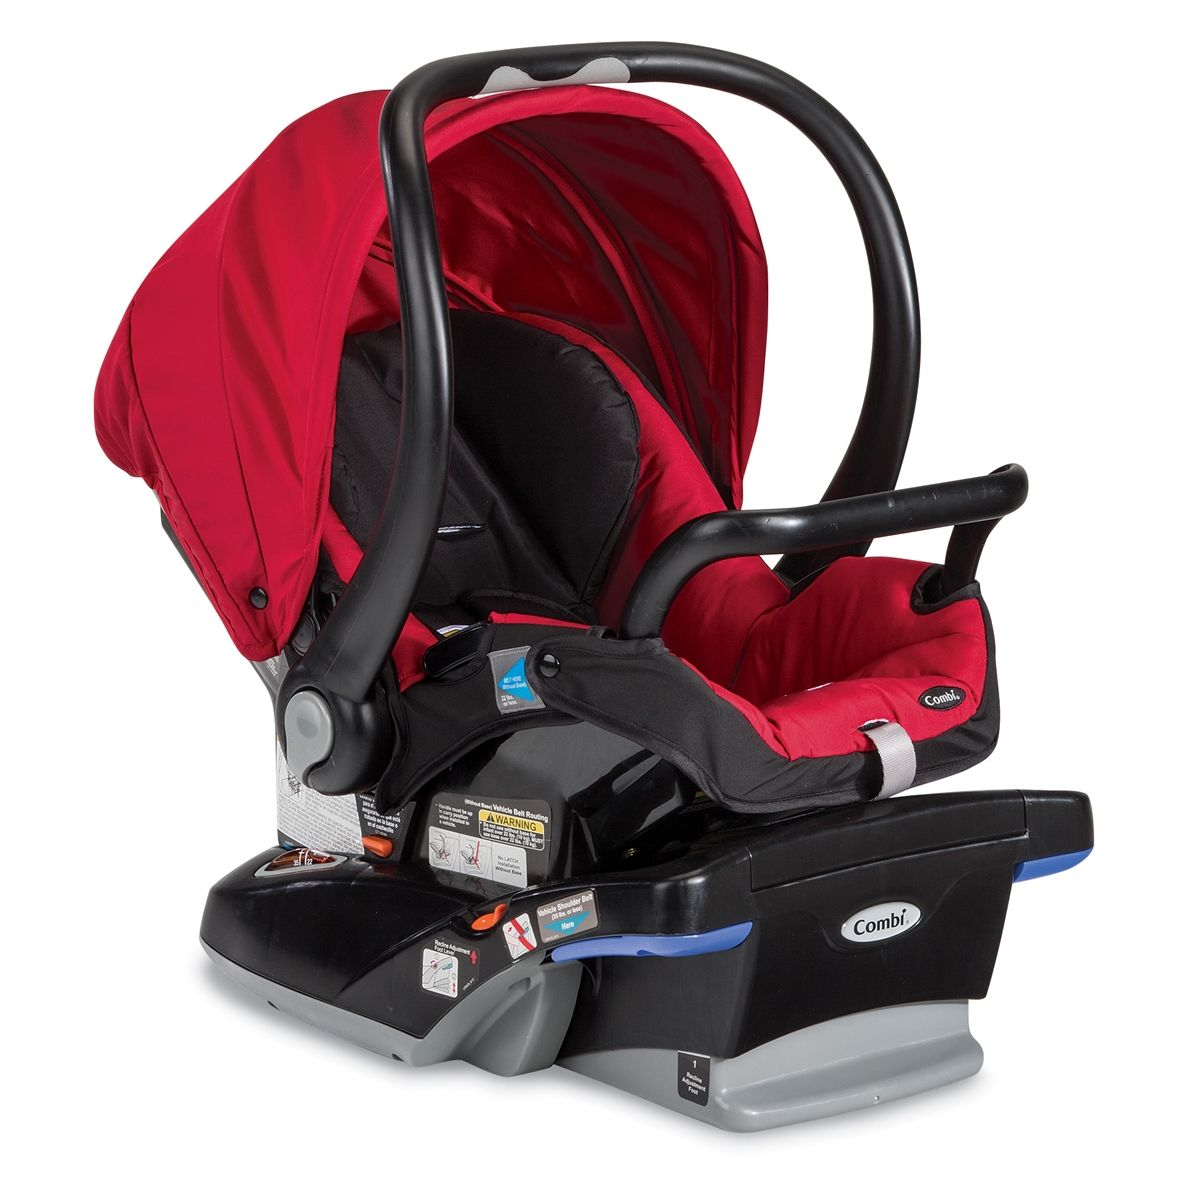 Shuttle Infant Car Seat Suprise For Toddlers Stroller Babystroller Affiliate In 2020 Baby Car Seats Car Seats Baby Car Safety